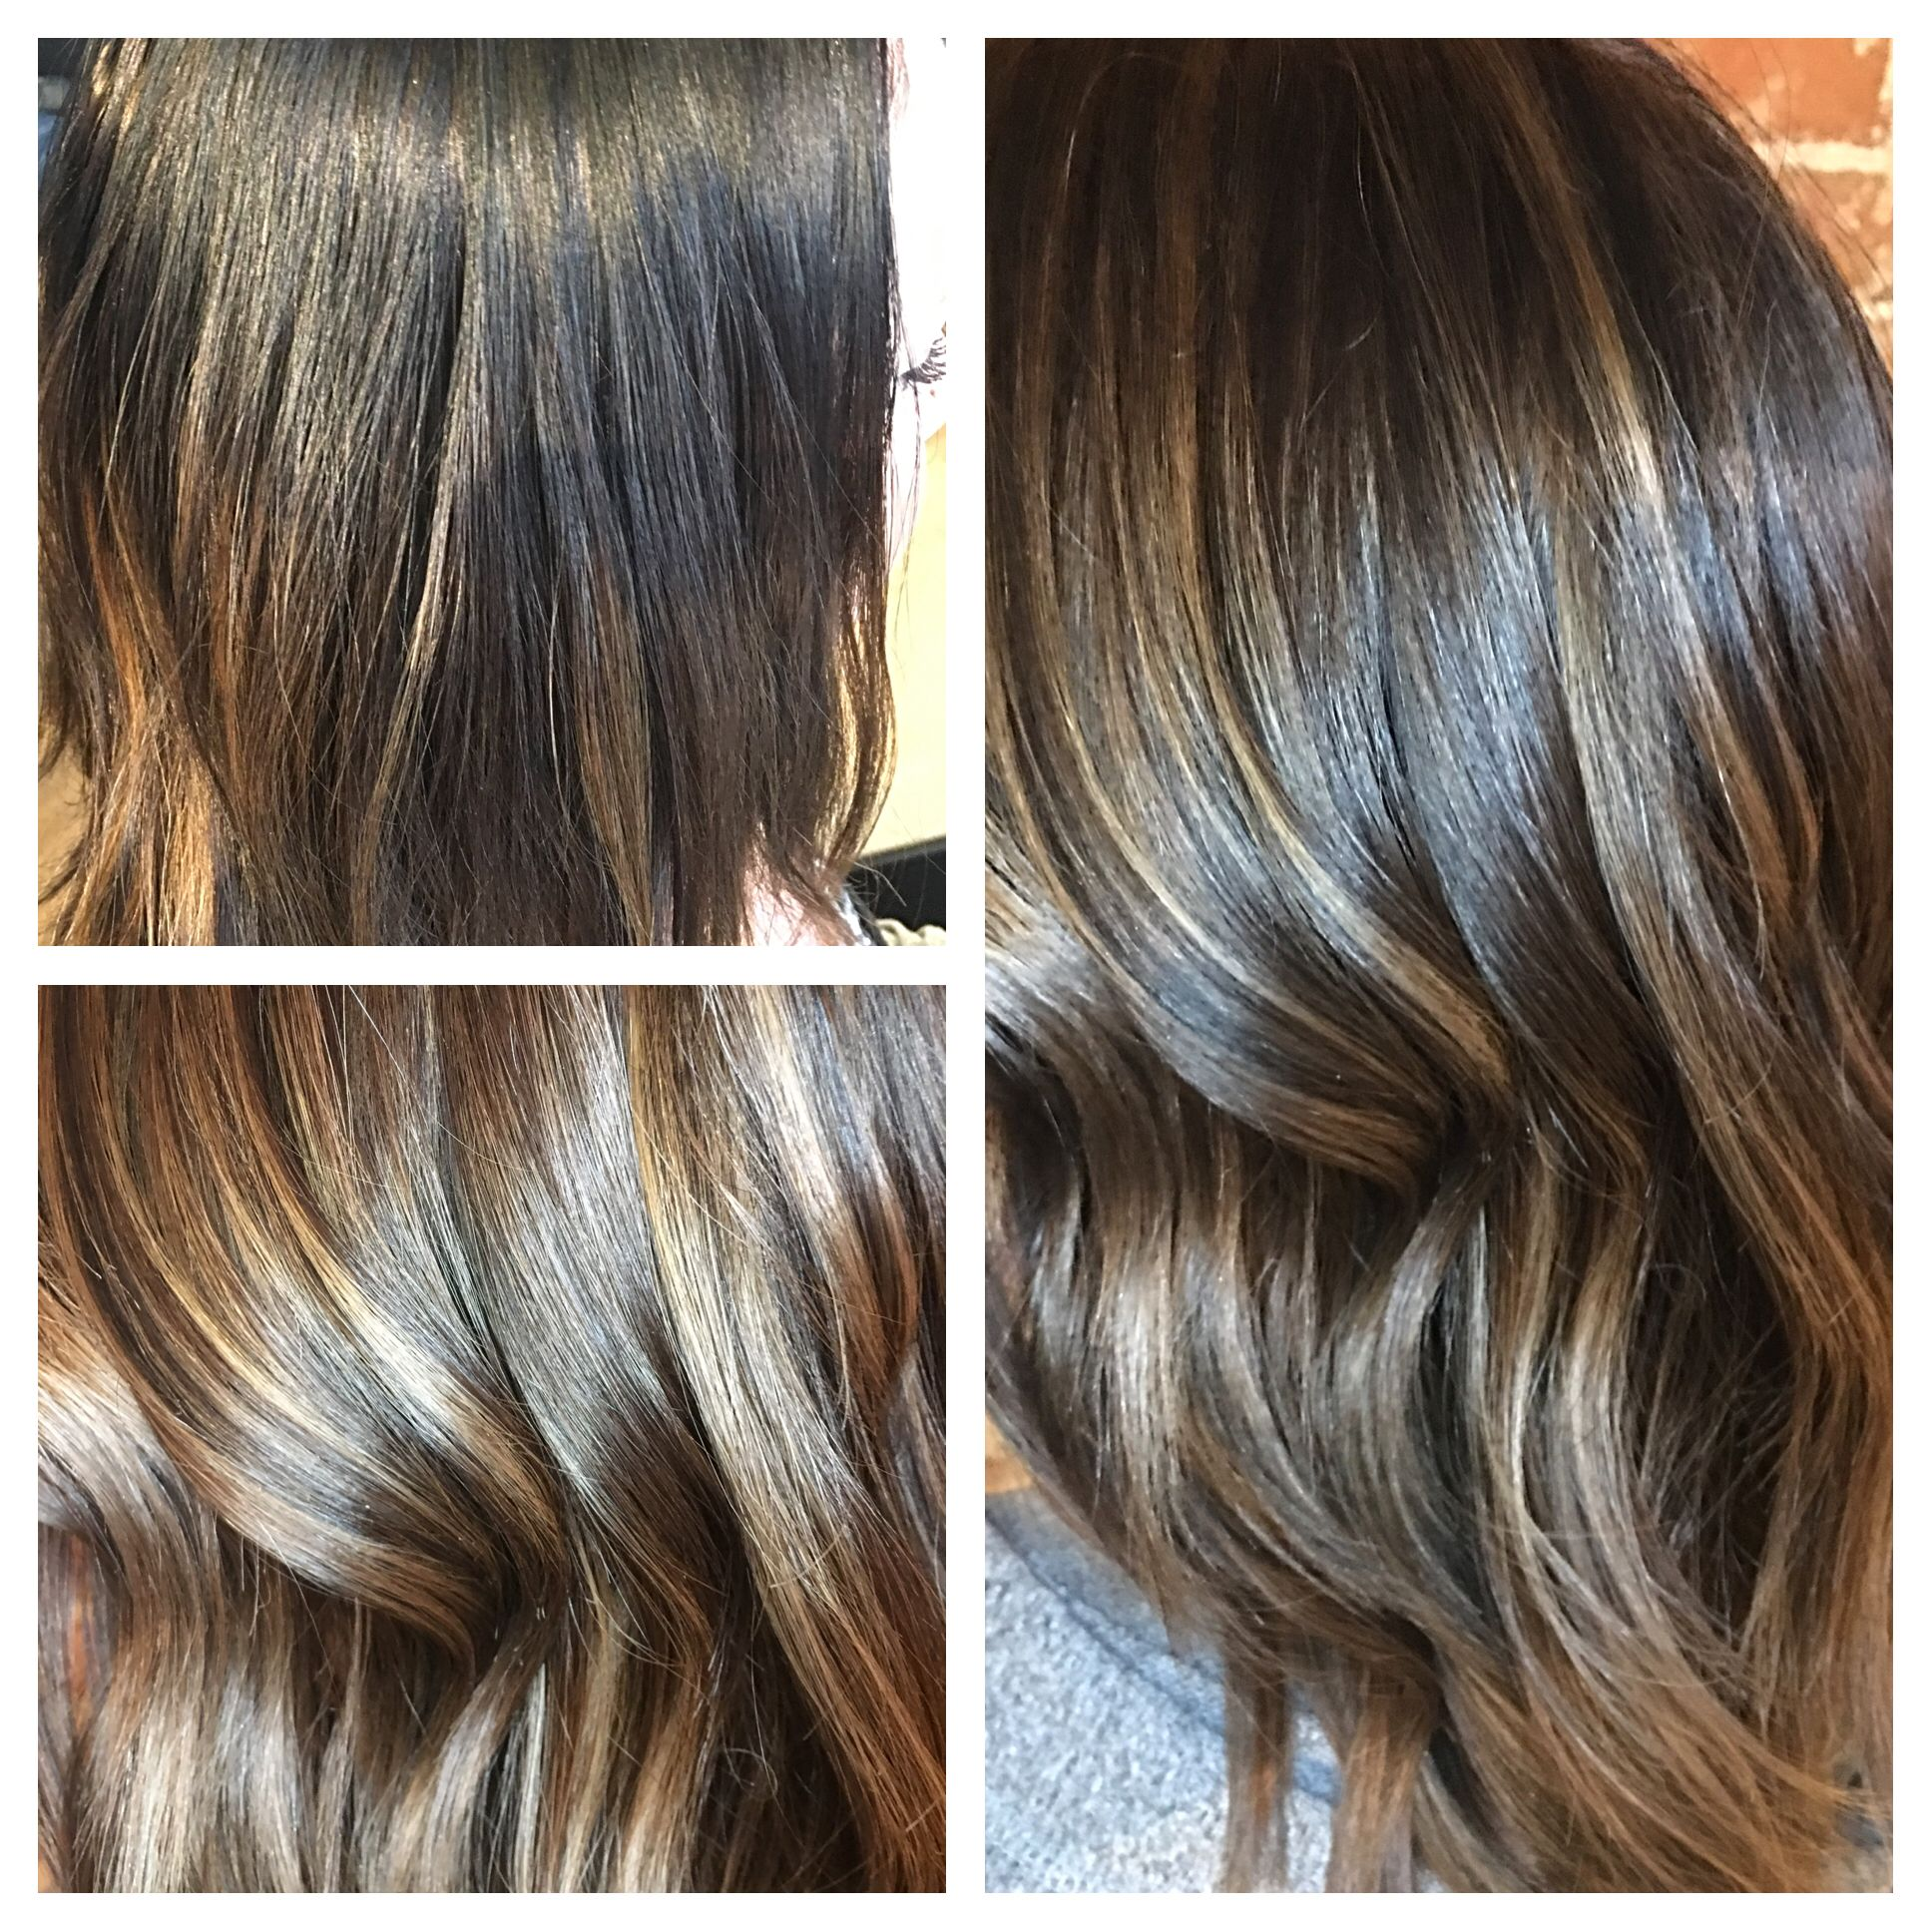 Beautiful Start To A Color Correction Process Baby Steps Keep The